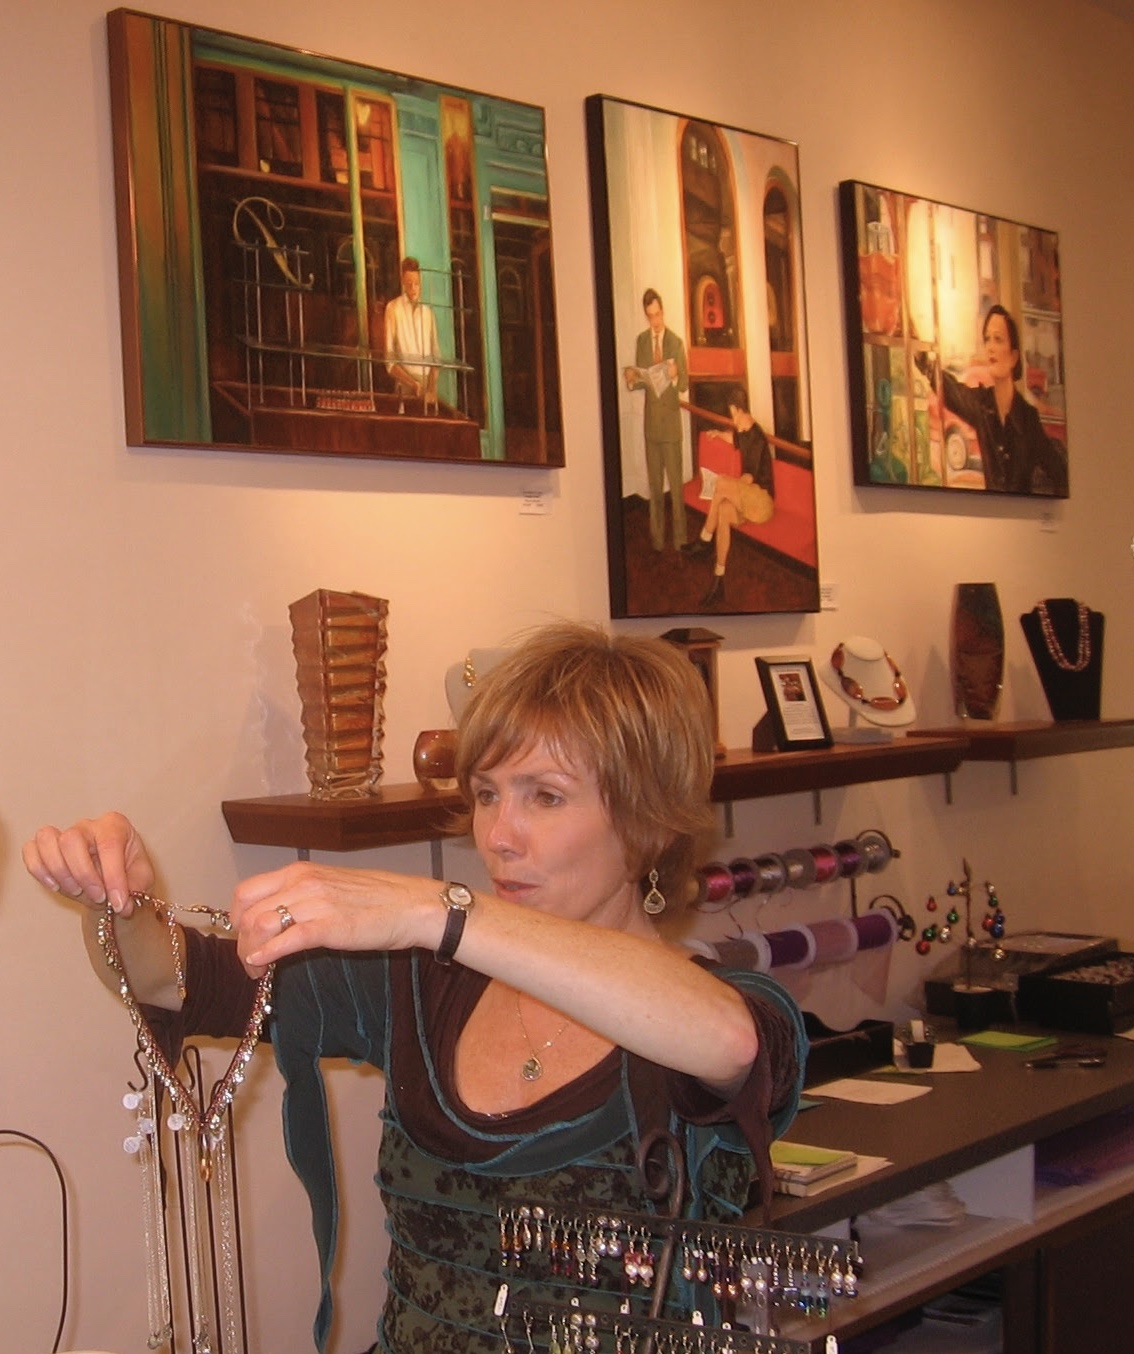 The Tenth Muse Gallery MaplEWOOD,NJ (Pictured: owner Mary Ann Spencer) -